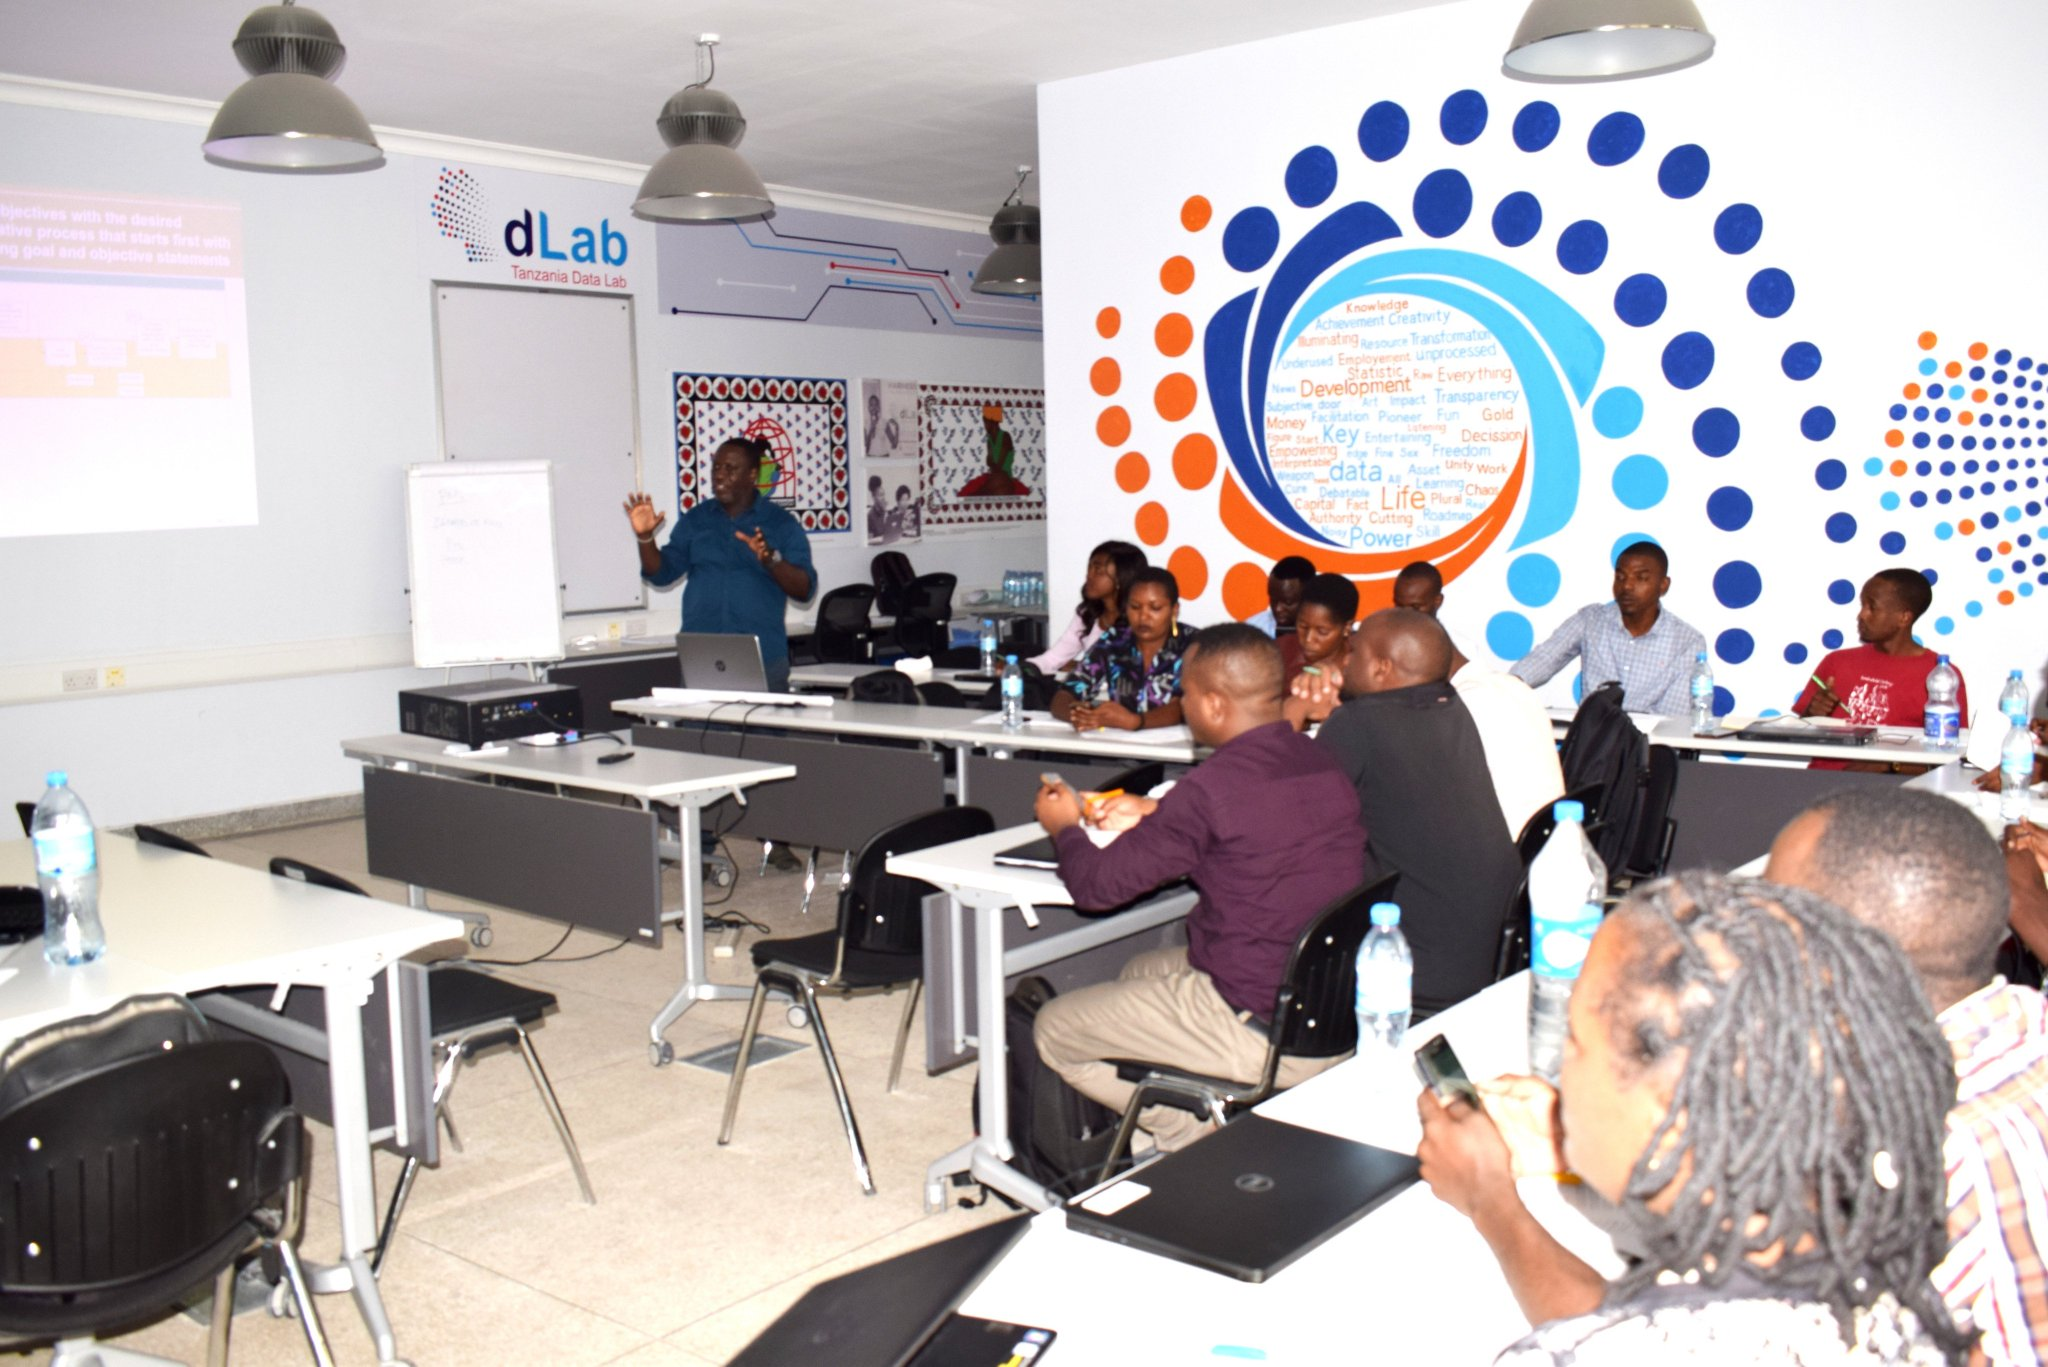 Dlab Tanzania On Twitter Day2 Dlab S Tailor Made Training To Csos From Sauti Project On Certificate In Performance Management A Capability Based Approach To M E The Training Funded By The Us Ambassador S Fund Thro